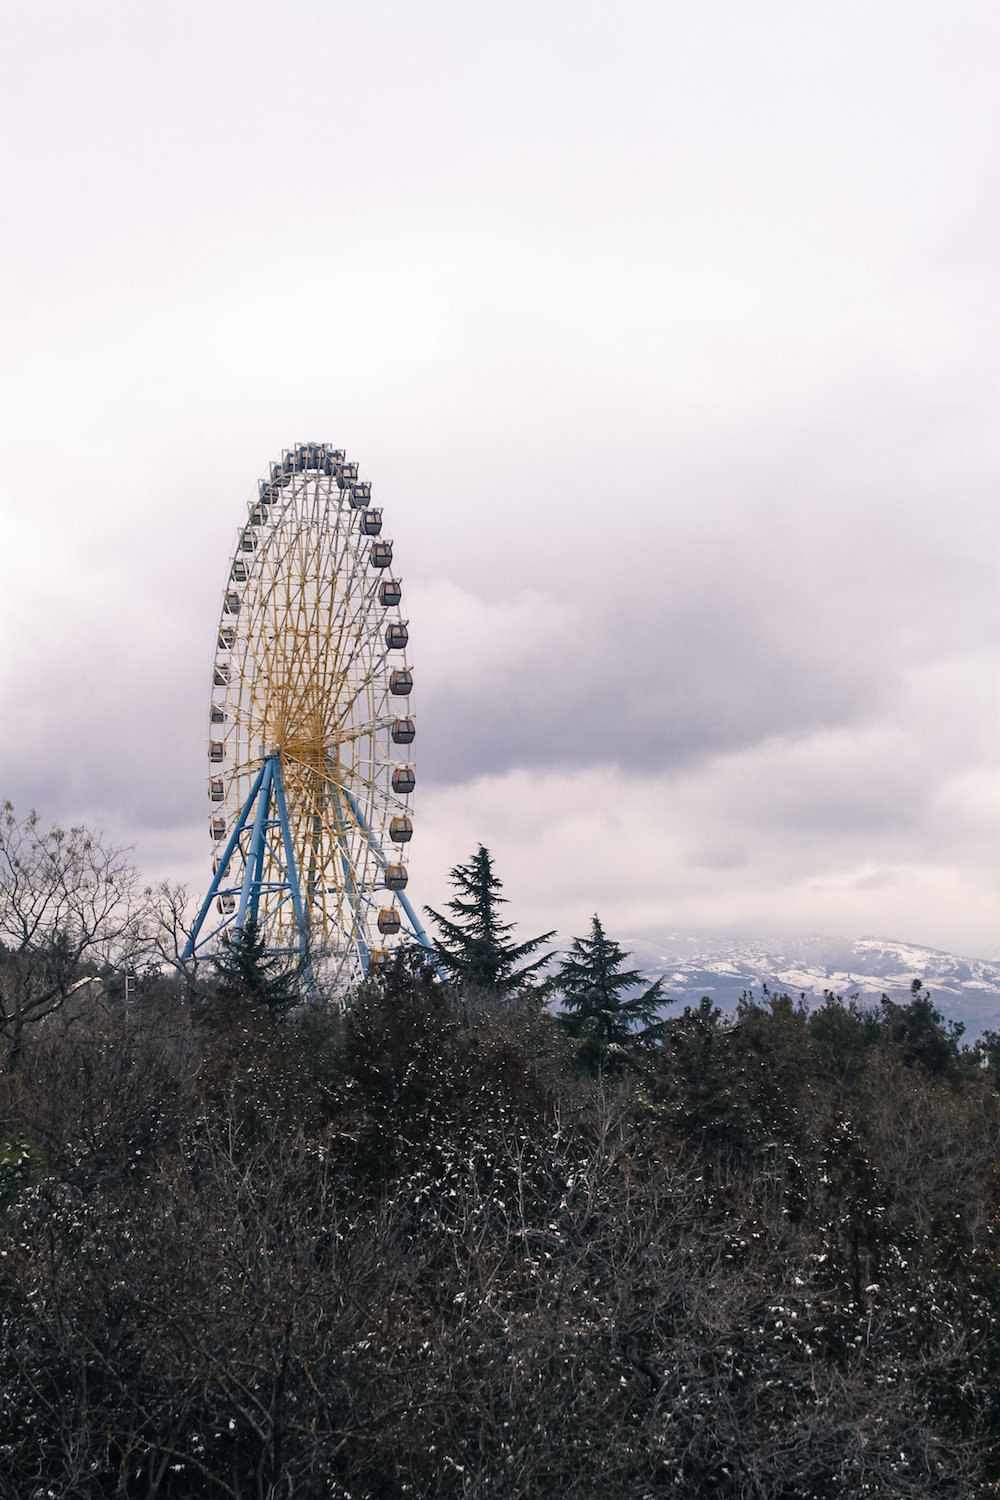 Ferris Wheel in Tbilisi (Eat Me. Drink Me.)